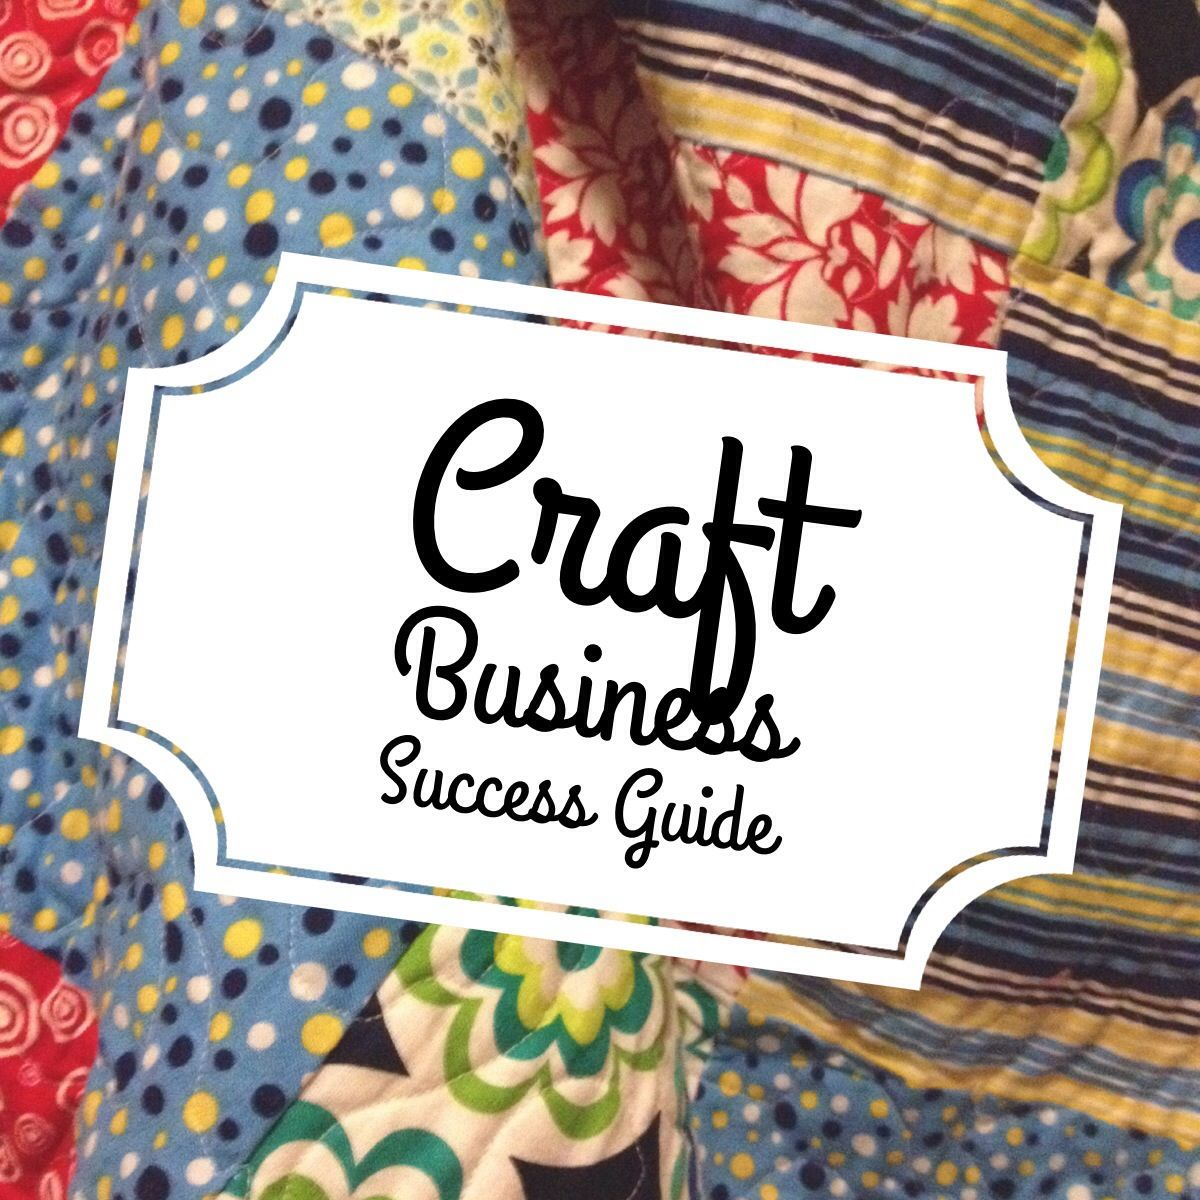 Craft Business Success Guide Free Download to help you build your craft business